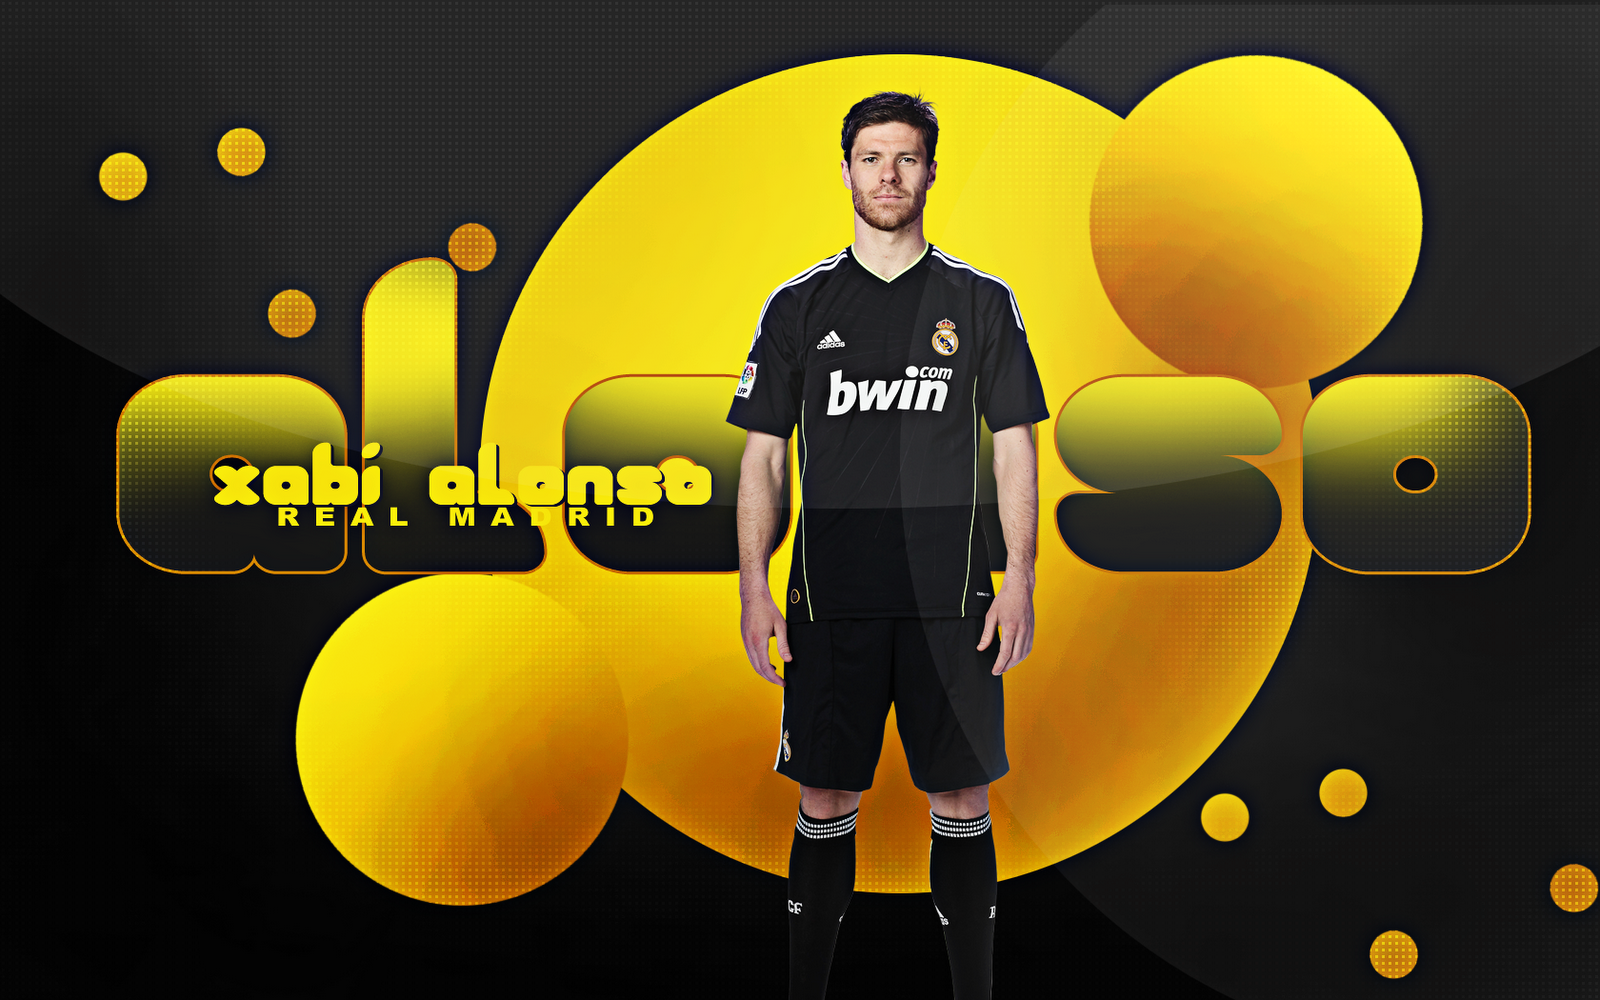 Xabi Alonso2012HdWallpapers10png 1600x1000